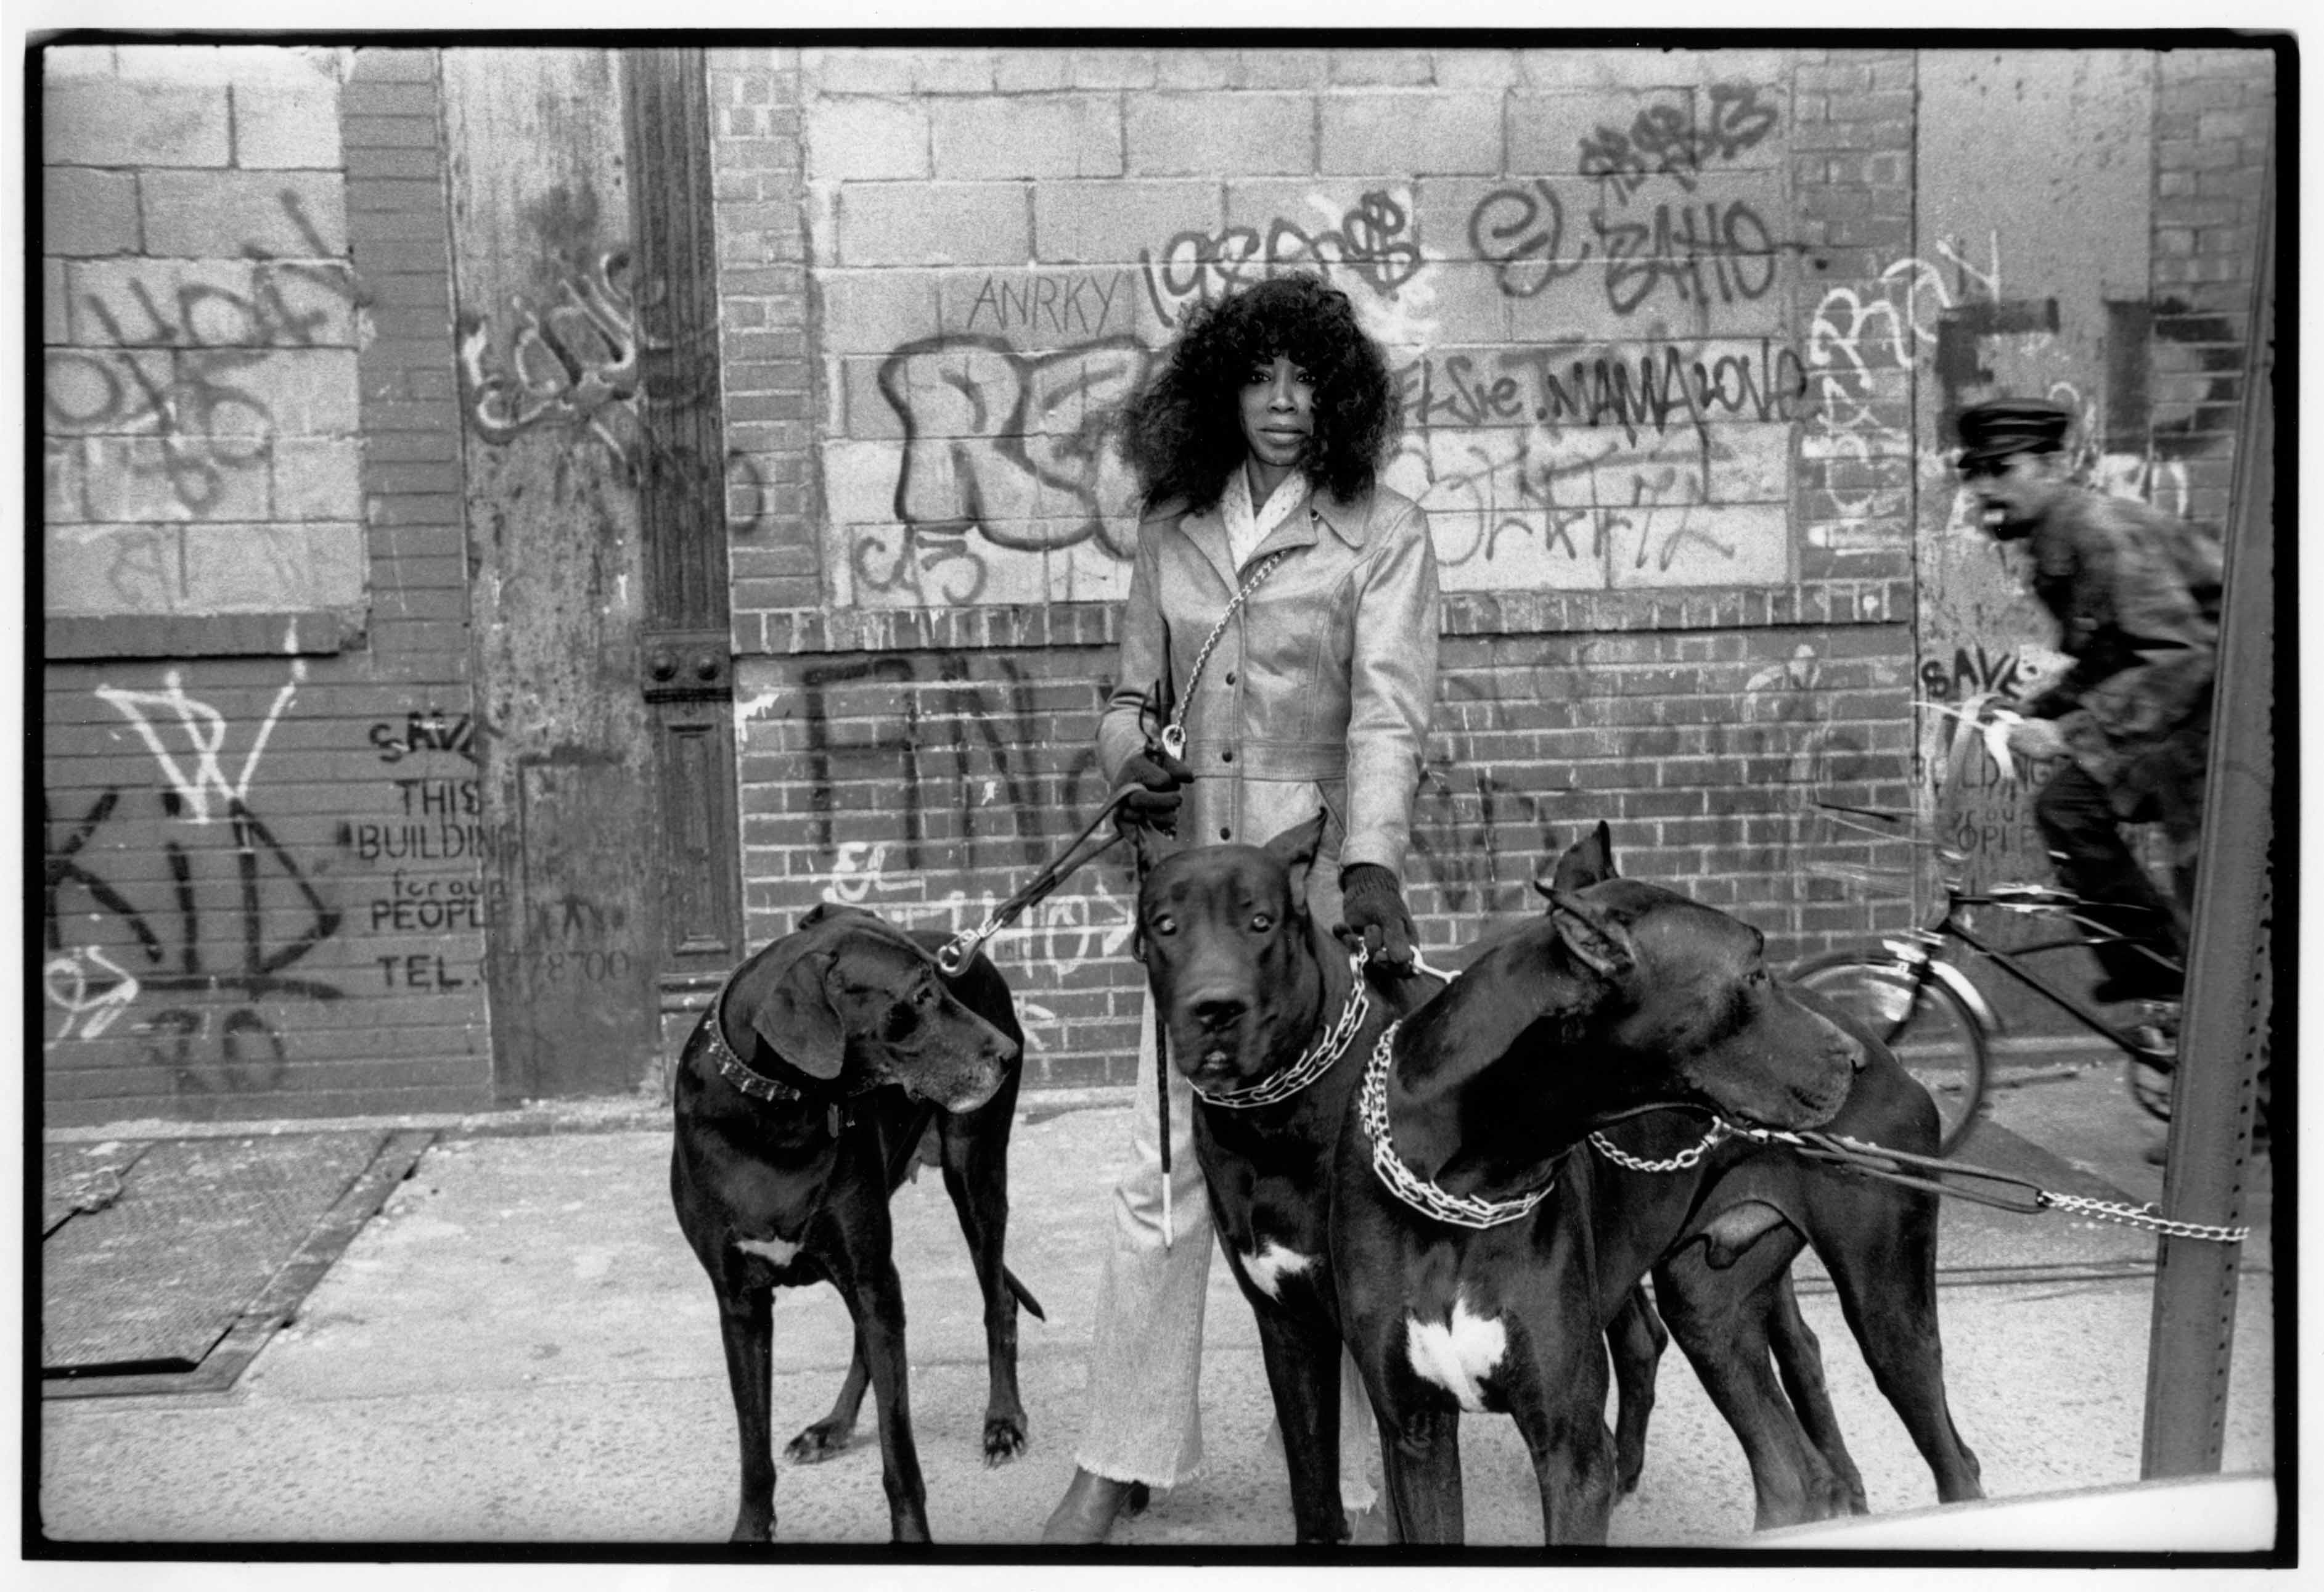 The lower east side. NY, 1988<br/>Gelatina de plata / Silver gelatin